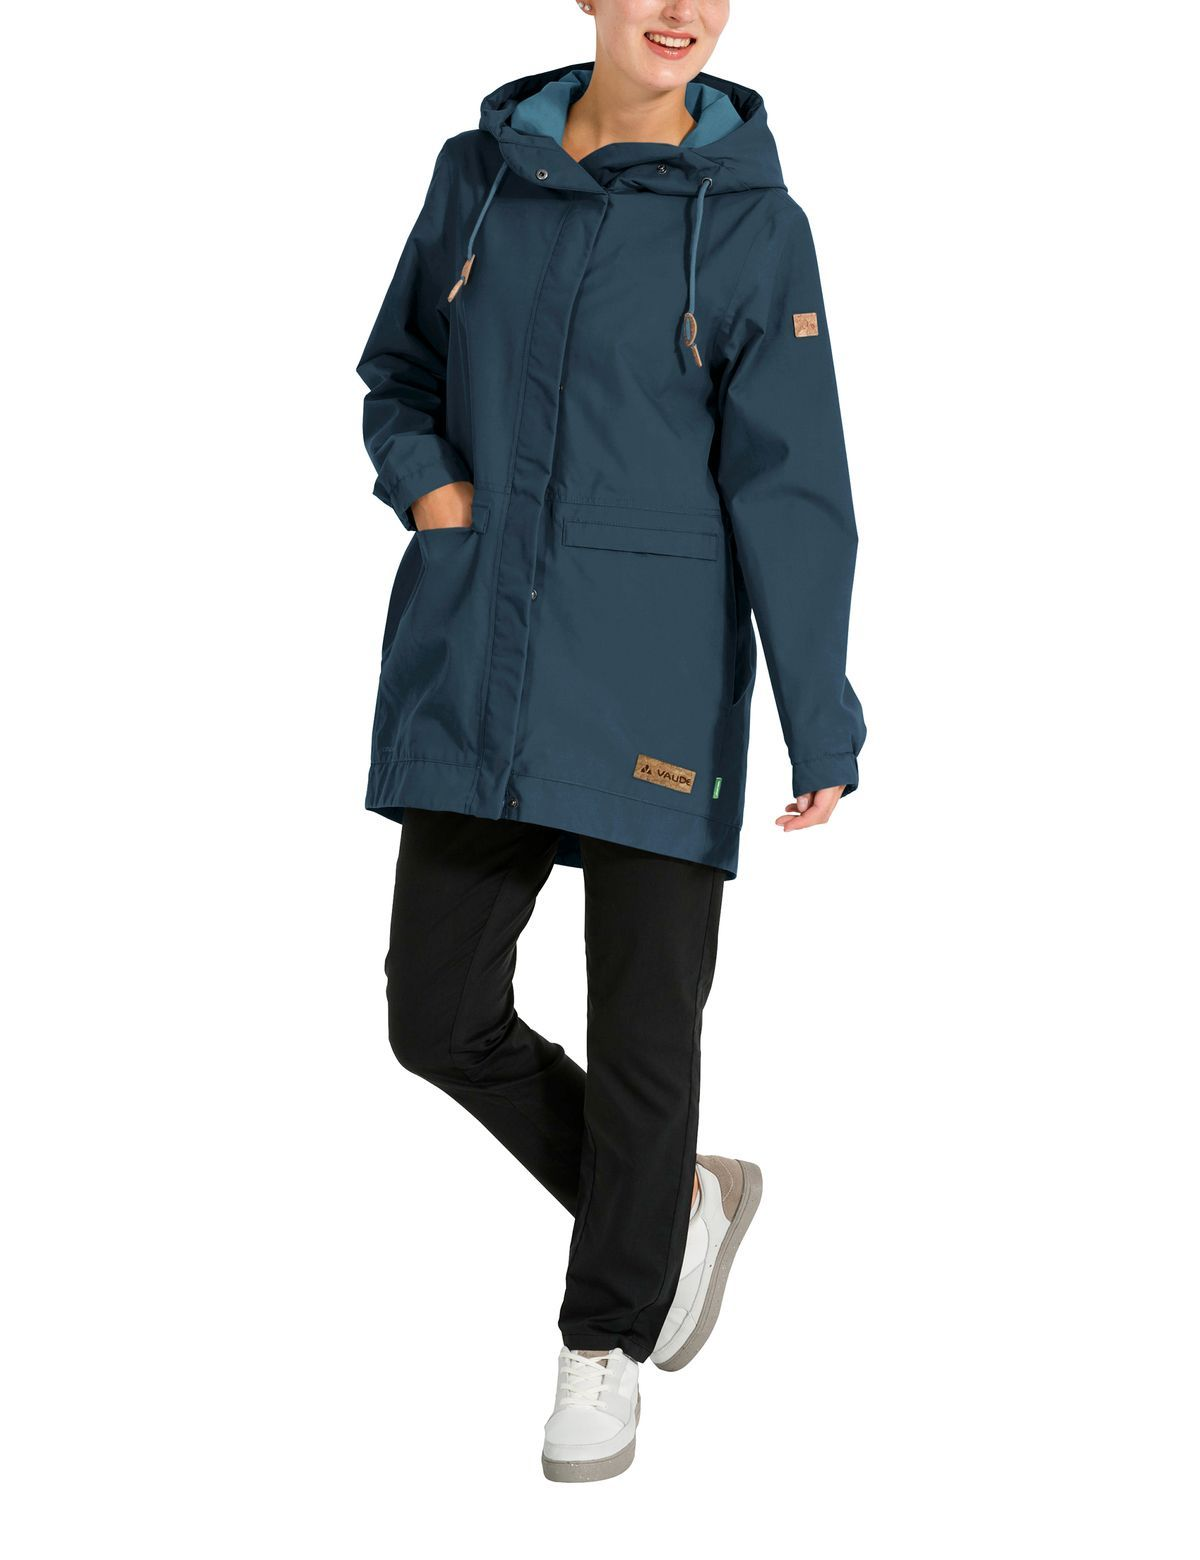 Vaude - W's Redmont Parka - Eco-friendly manufacturing - Weekendbee - sustainable sportswear